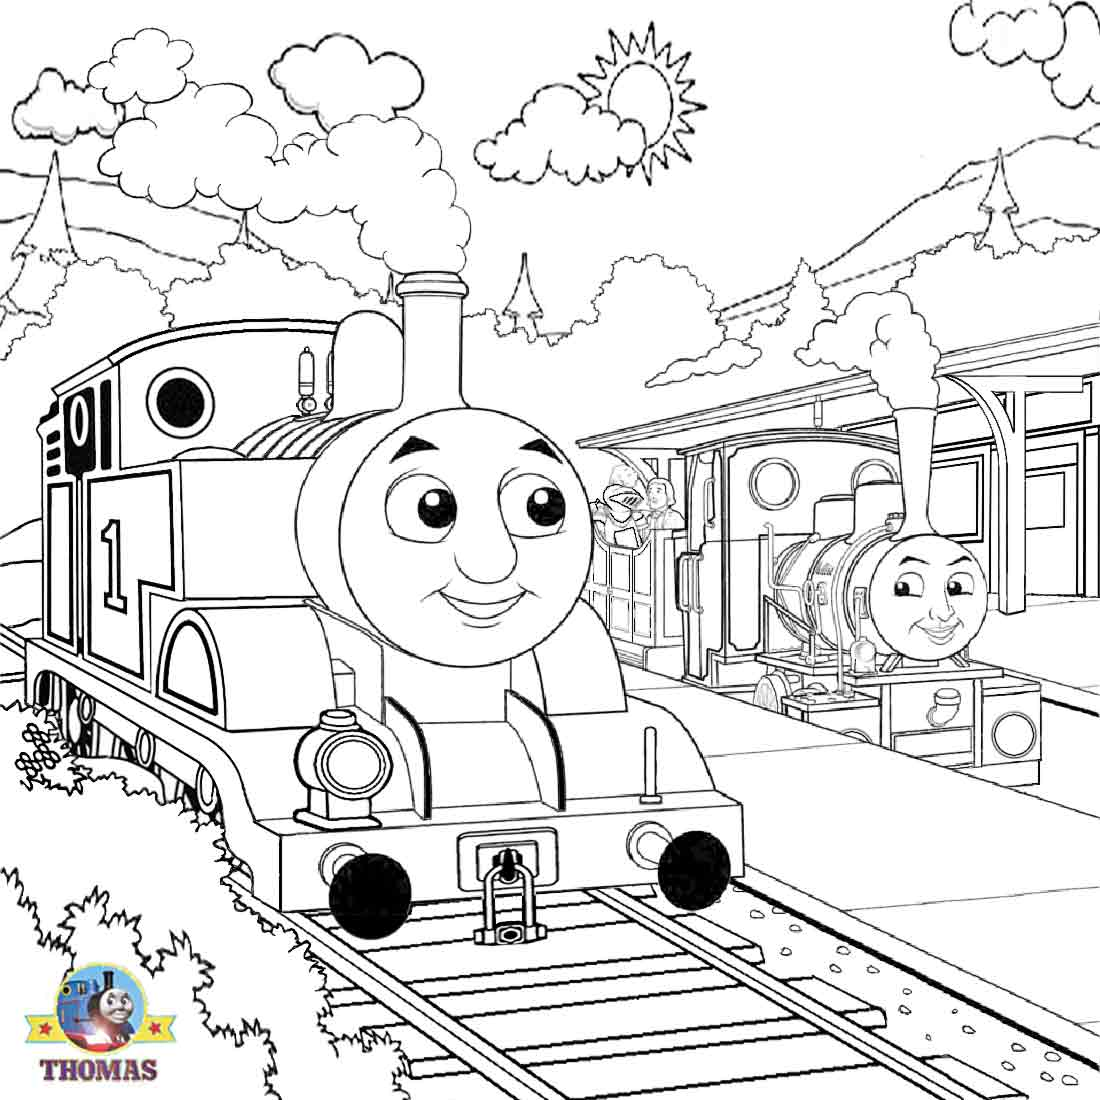 1100x1100 Free Coloring Pages Printable Pictures To Color Kids Drawing Ideas